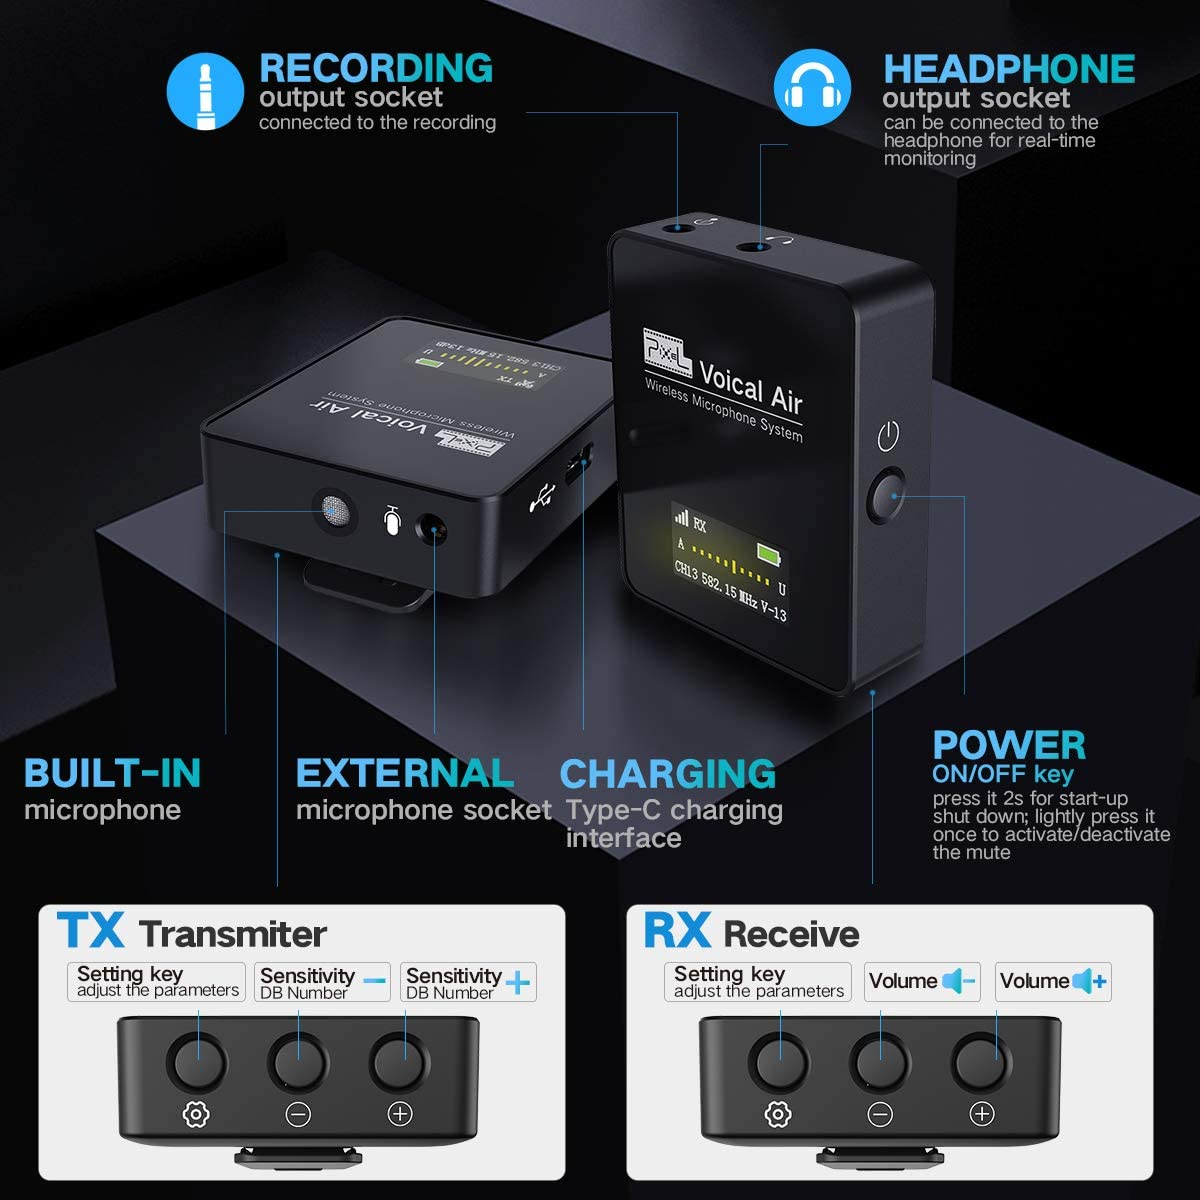 Compact Wireless Microphone System Transmitter and Receiver for Camera,Smartphones,DSLR,Mirrorless and Video Cameras,Mobile Devices YouTube Facebook Live Pixel Wireless Lavalier Microphone